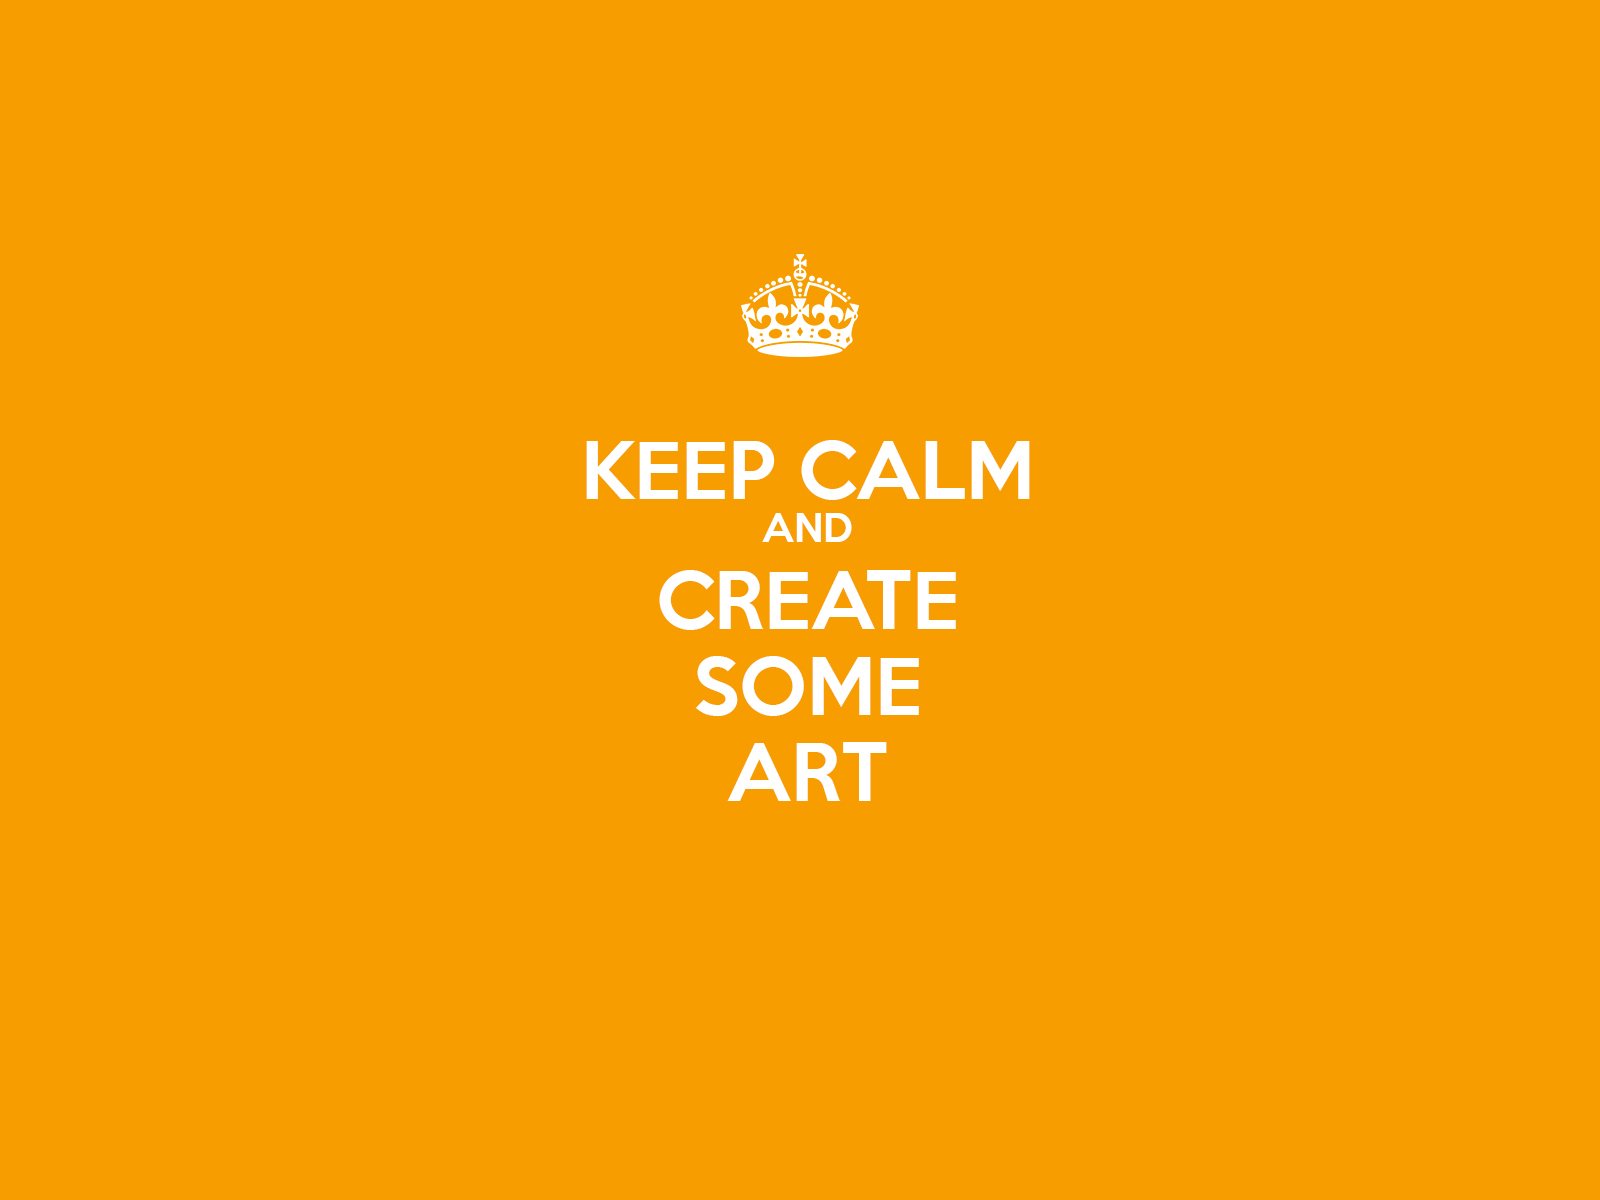 ART OF ARTYOM SEMENOV Keep Calm and Create Some Art Wallpaper 1600x1200